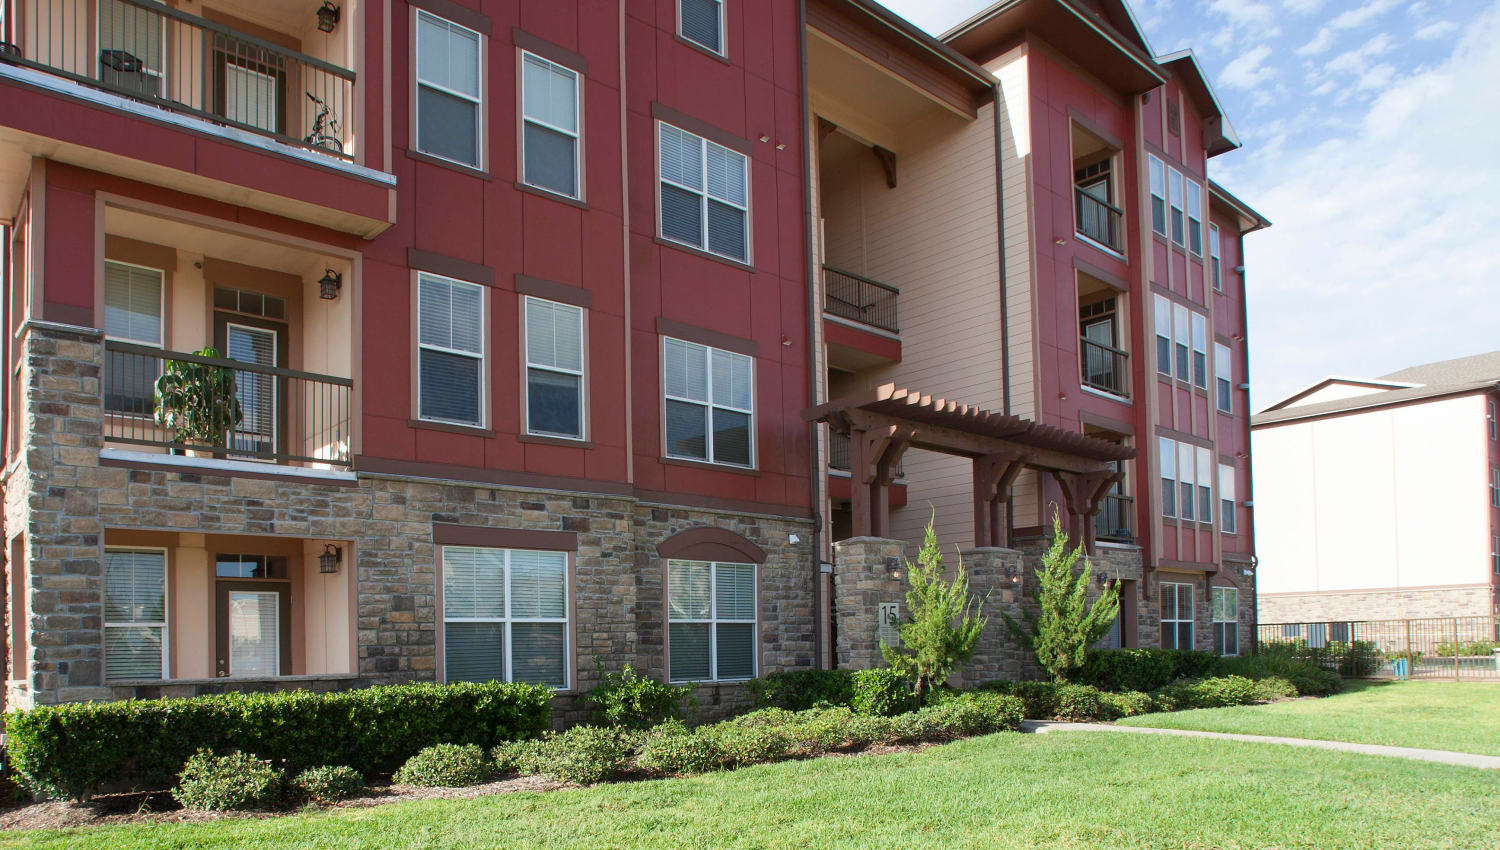 Resident building overlooking one of the expansive lawn areas at Olympus Katy Ranch in Katy, Texas